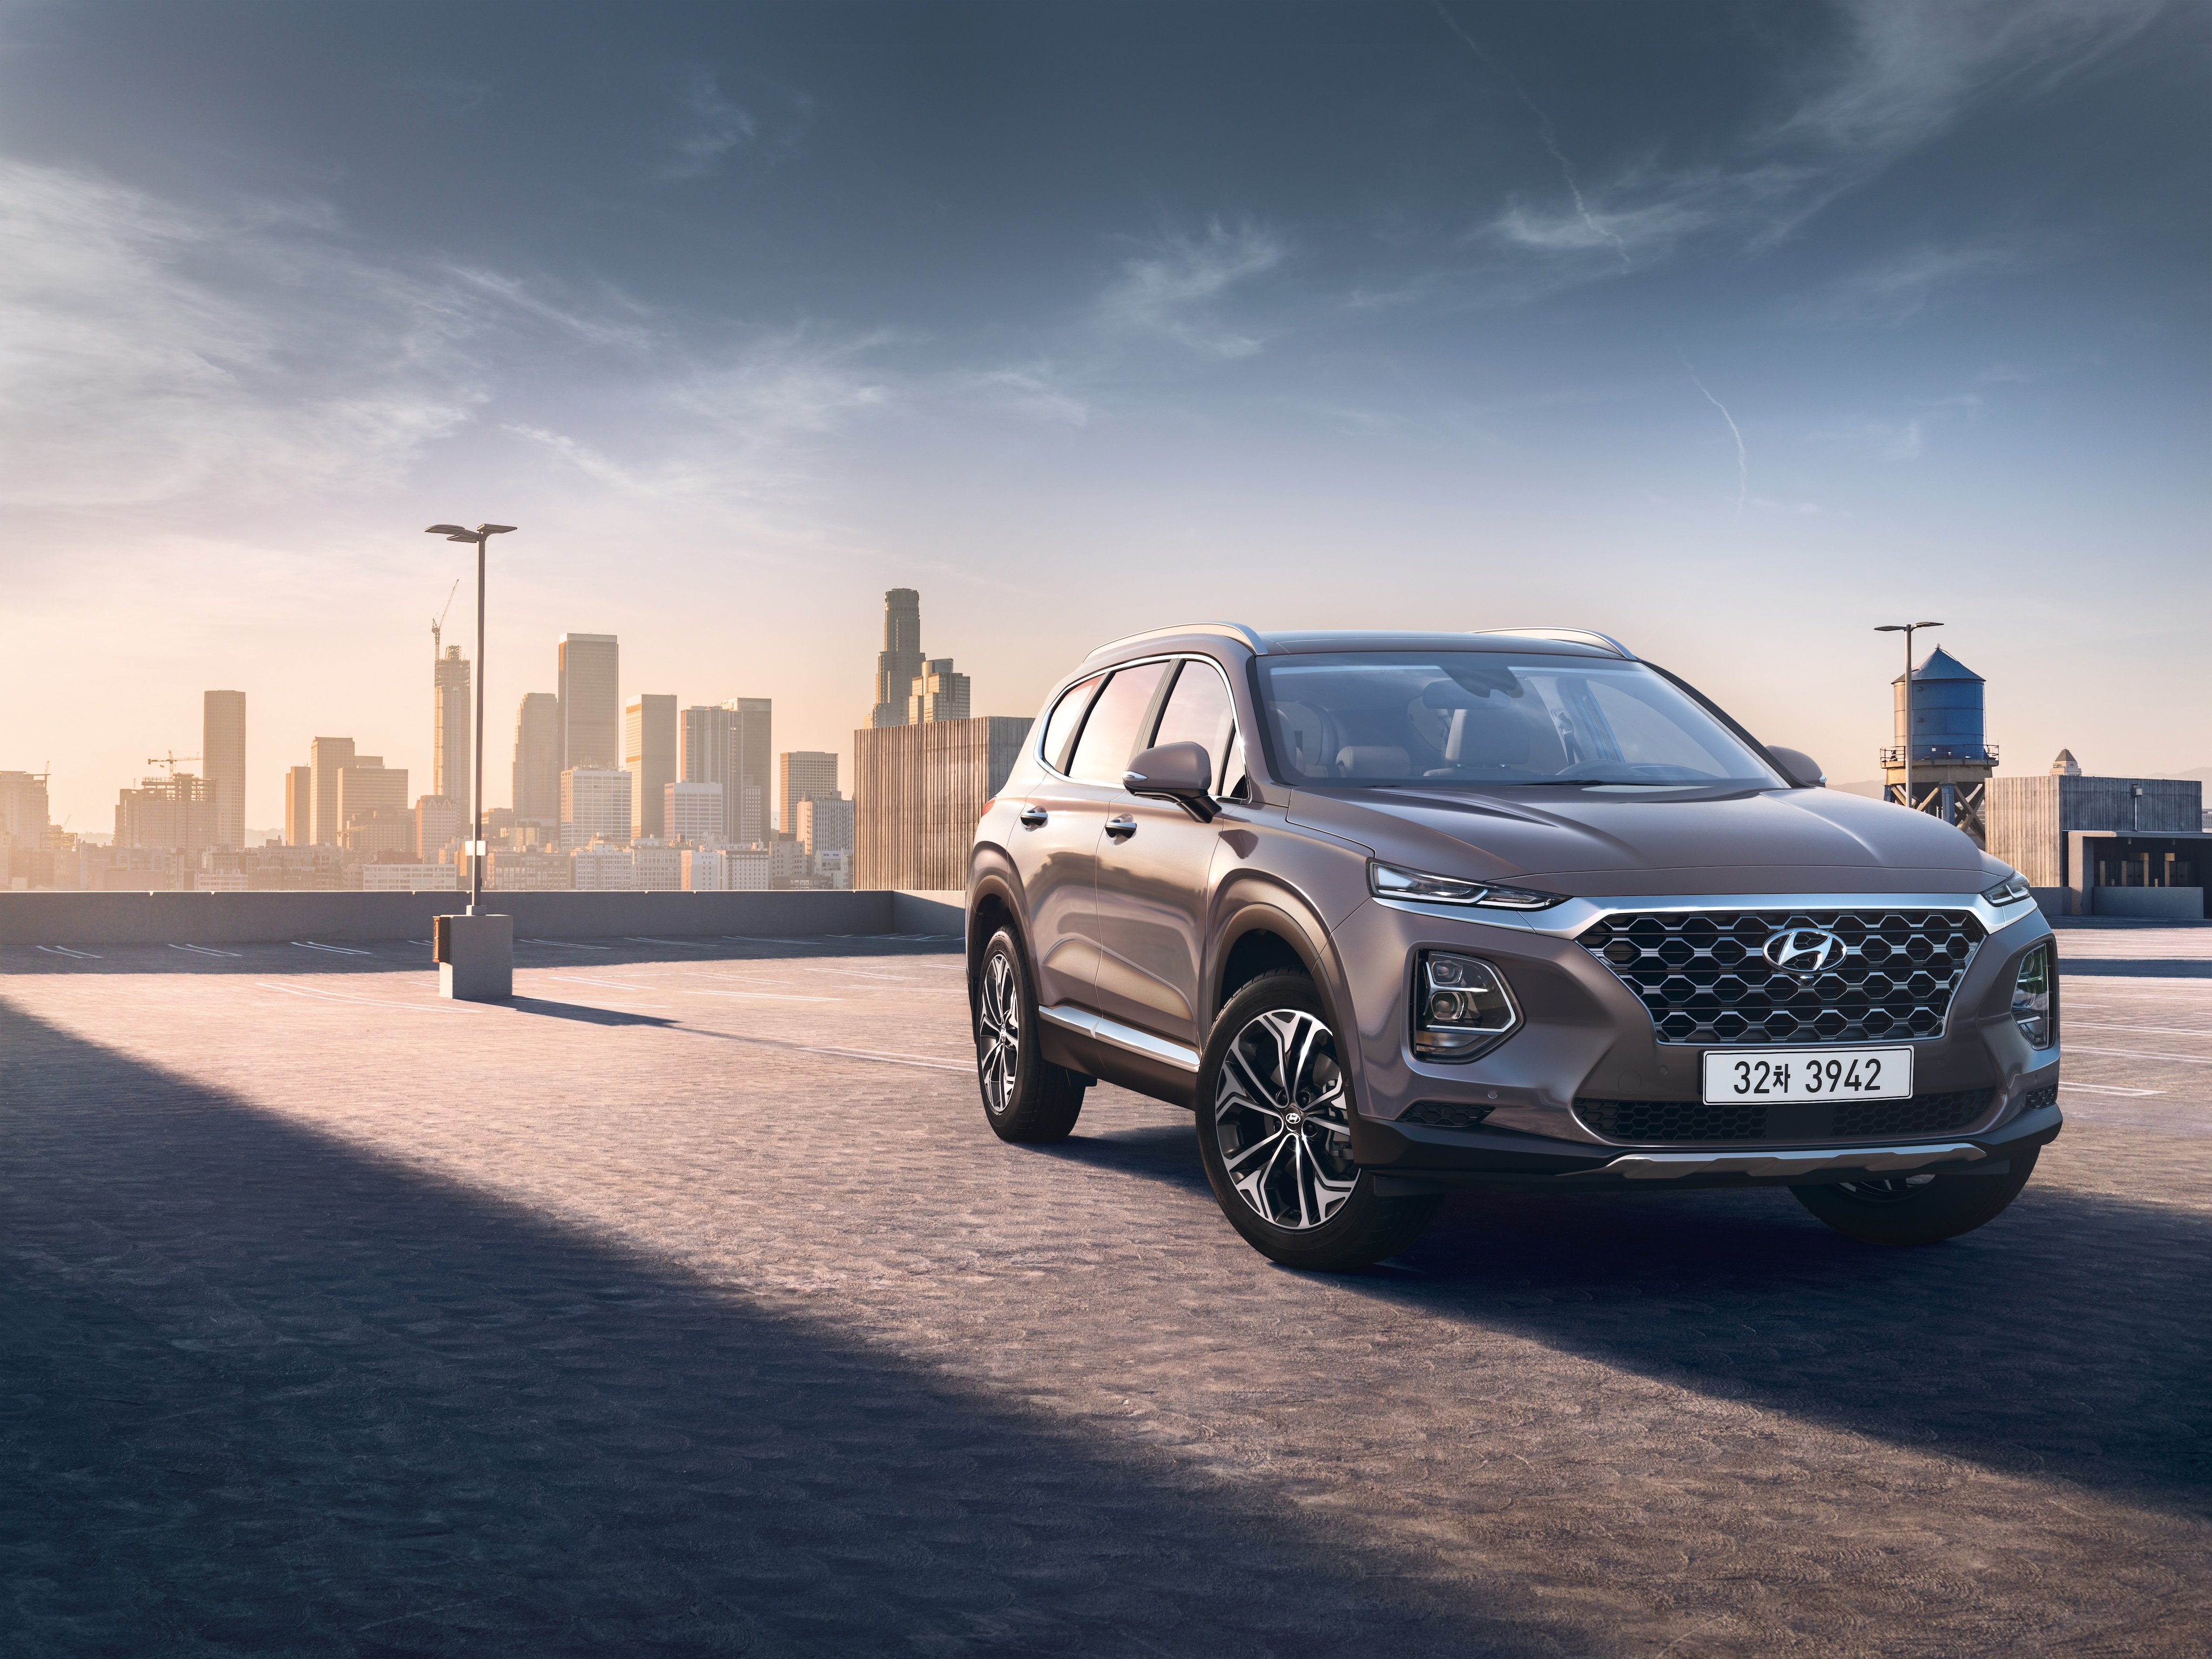 2019 Hyundai Santa Fe at Murray Hyundai Winnipeg